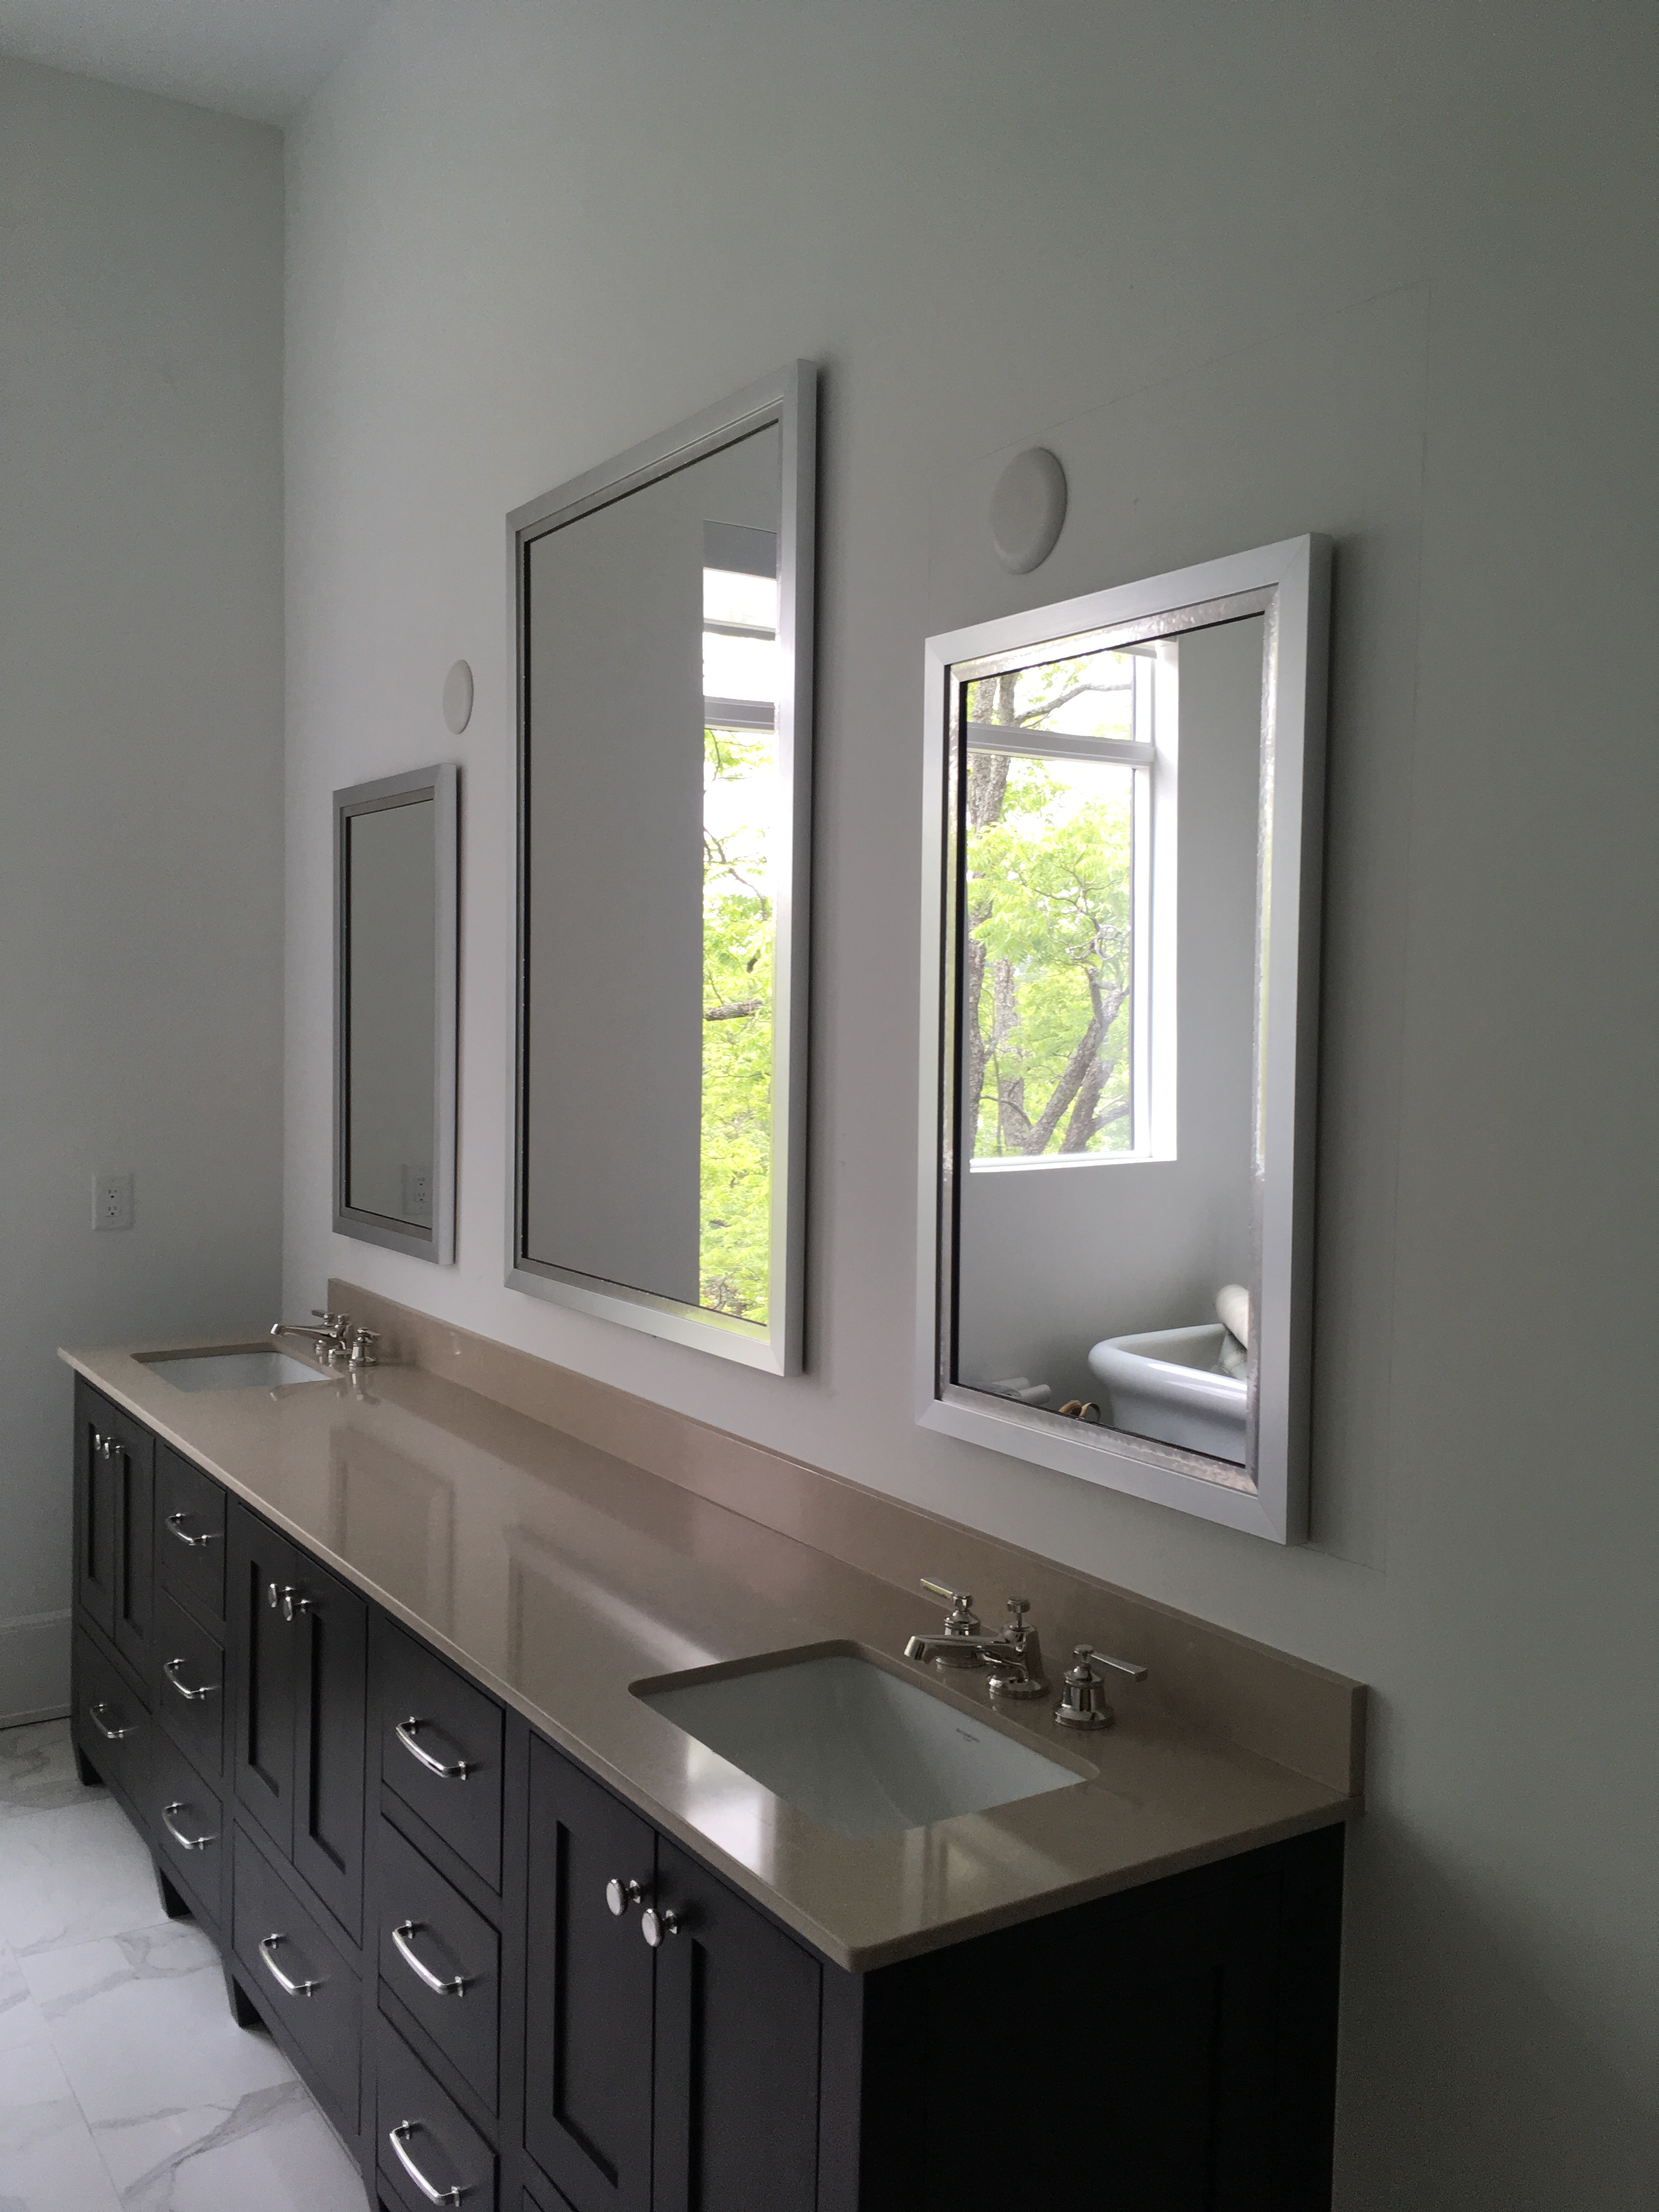 CUSTOM MIRRORS | Discover Art at Frameworks Gallery